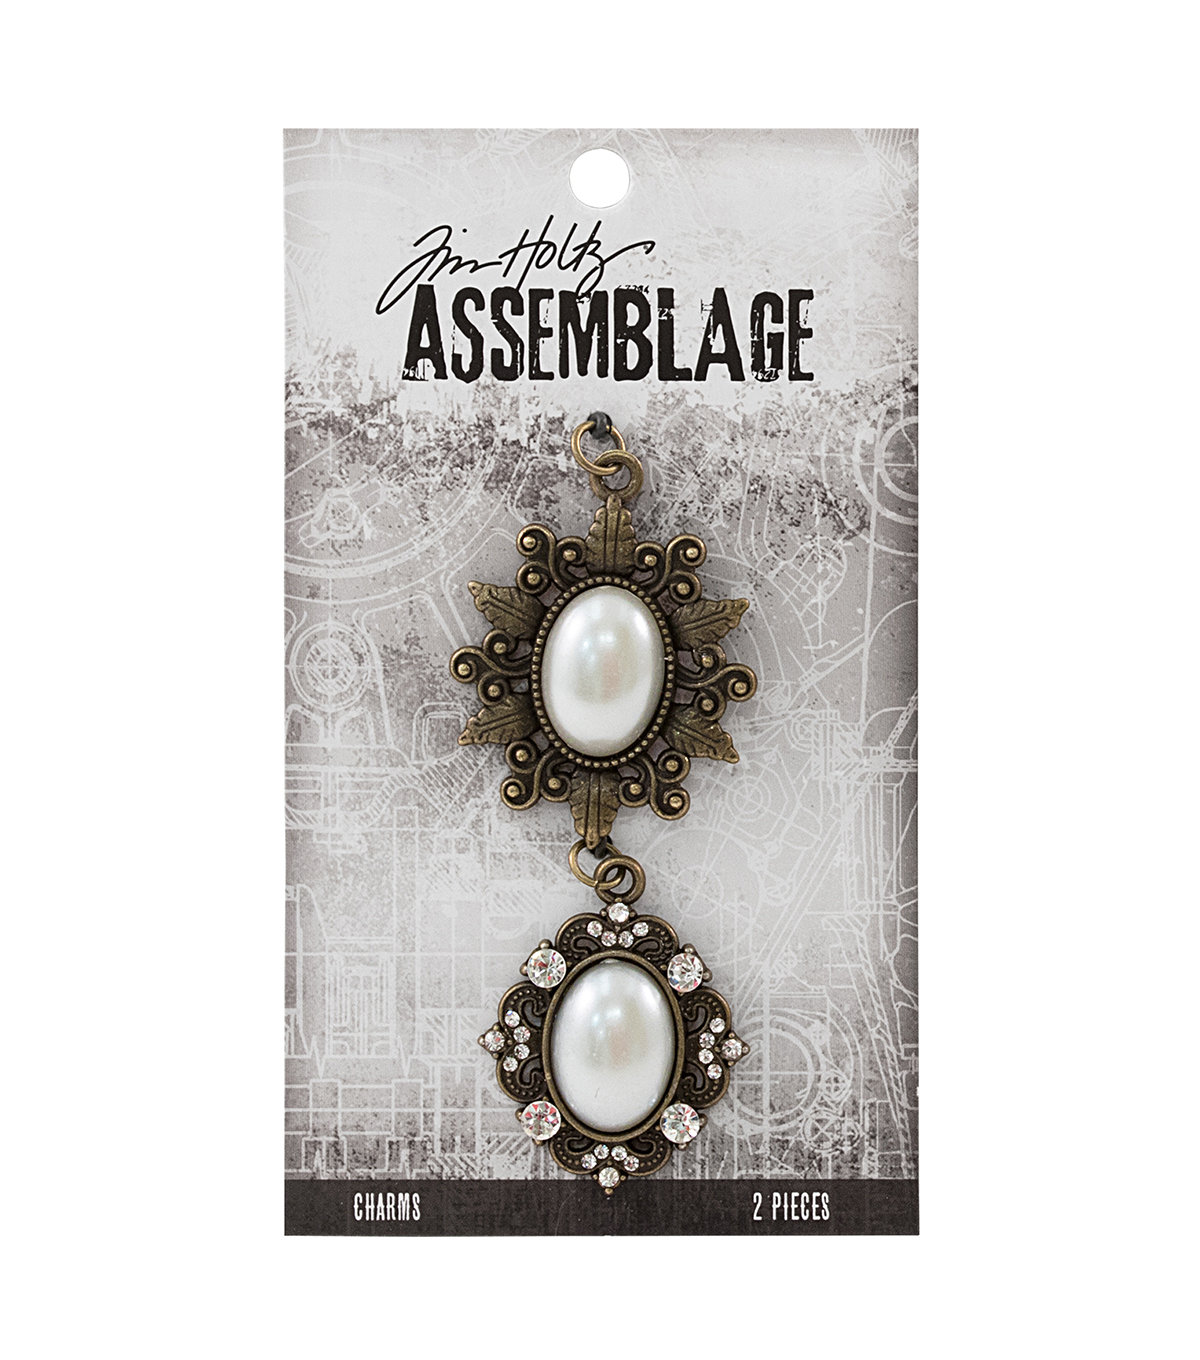 Tim Holtz® Assemblage Pack of 2 Oval Pearl Frames Charms